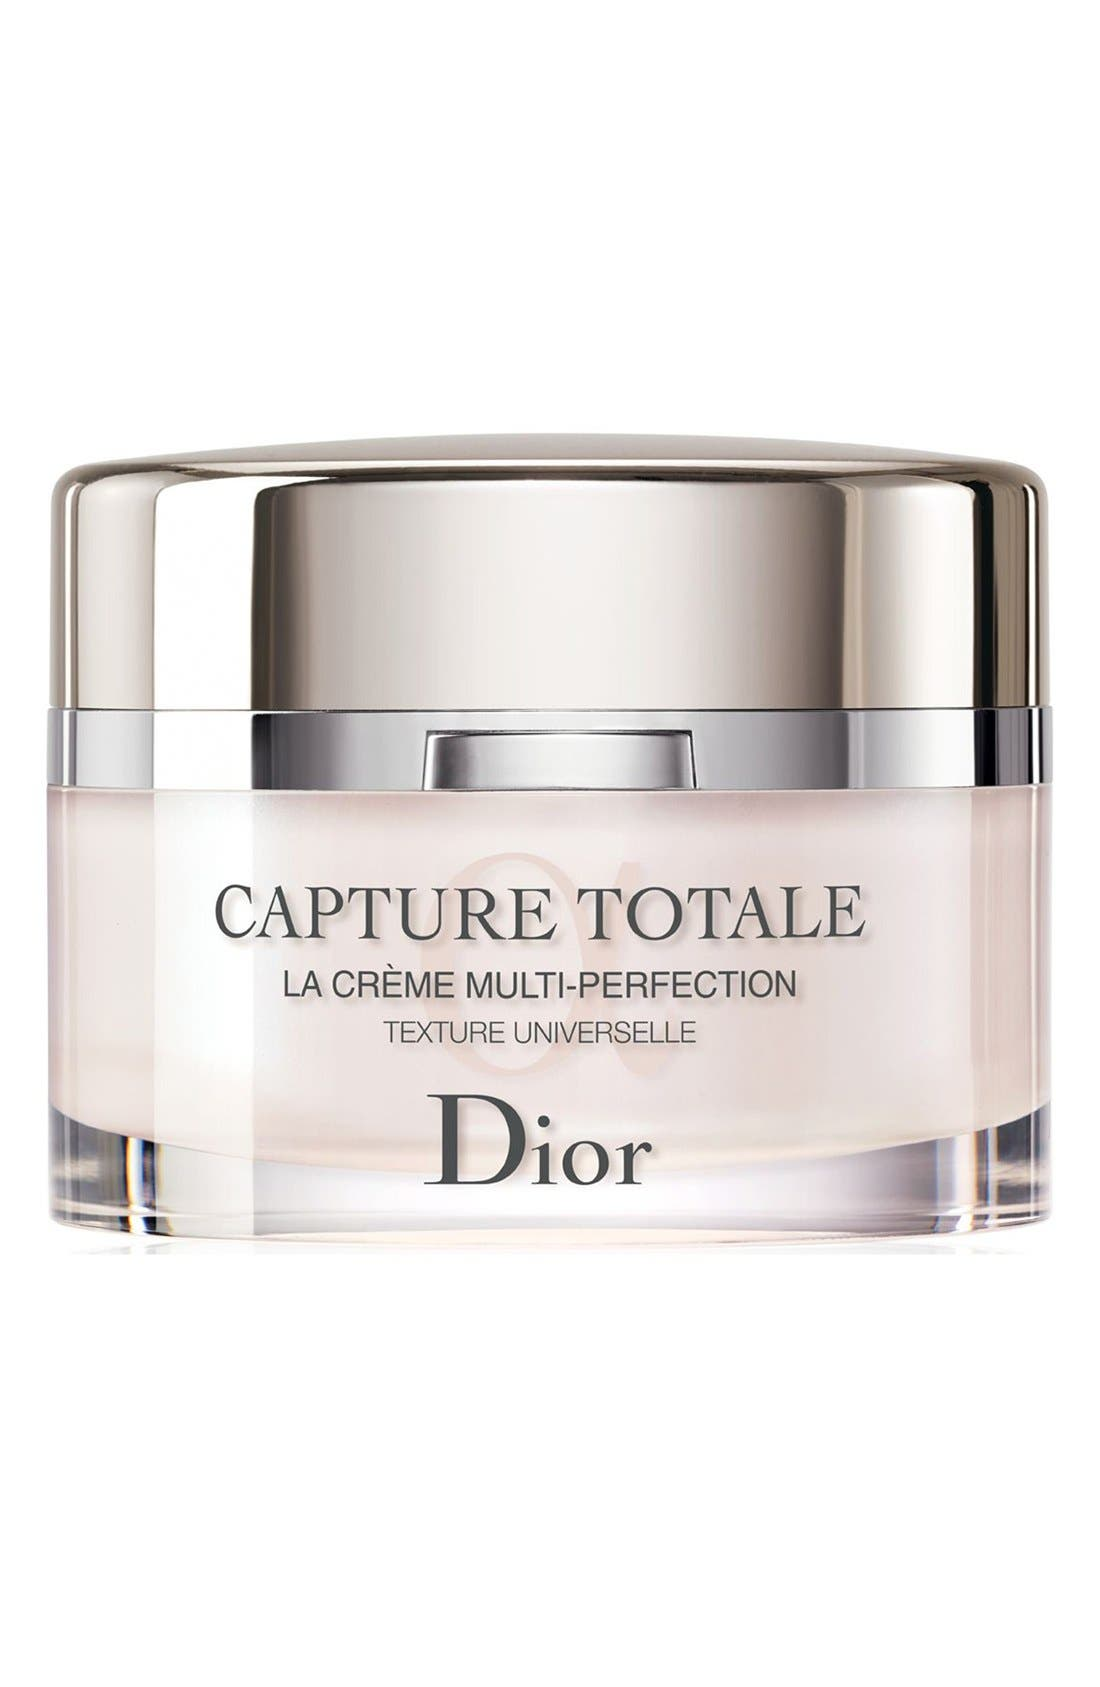 Dior 'Capture Totale - Universal Texture' Multi-Perfection Creme